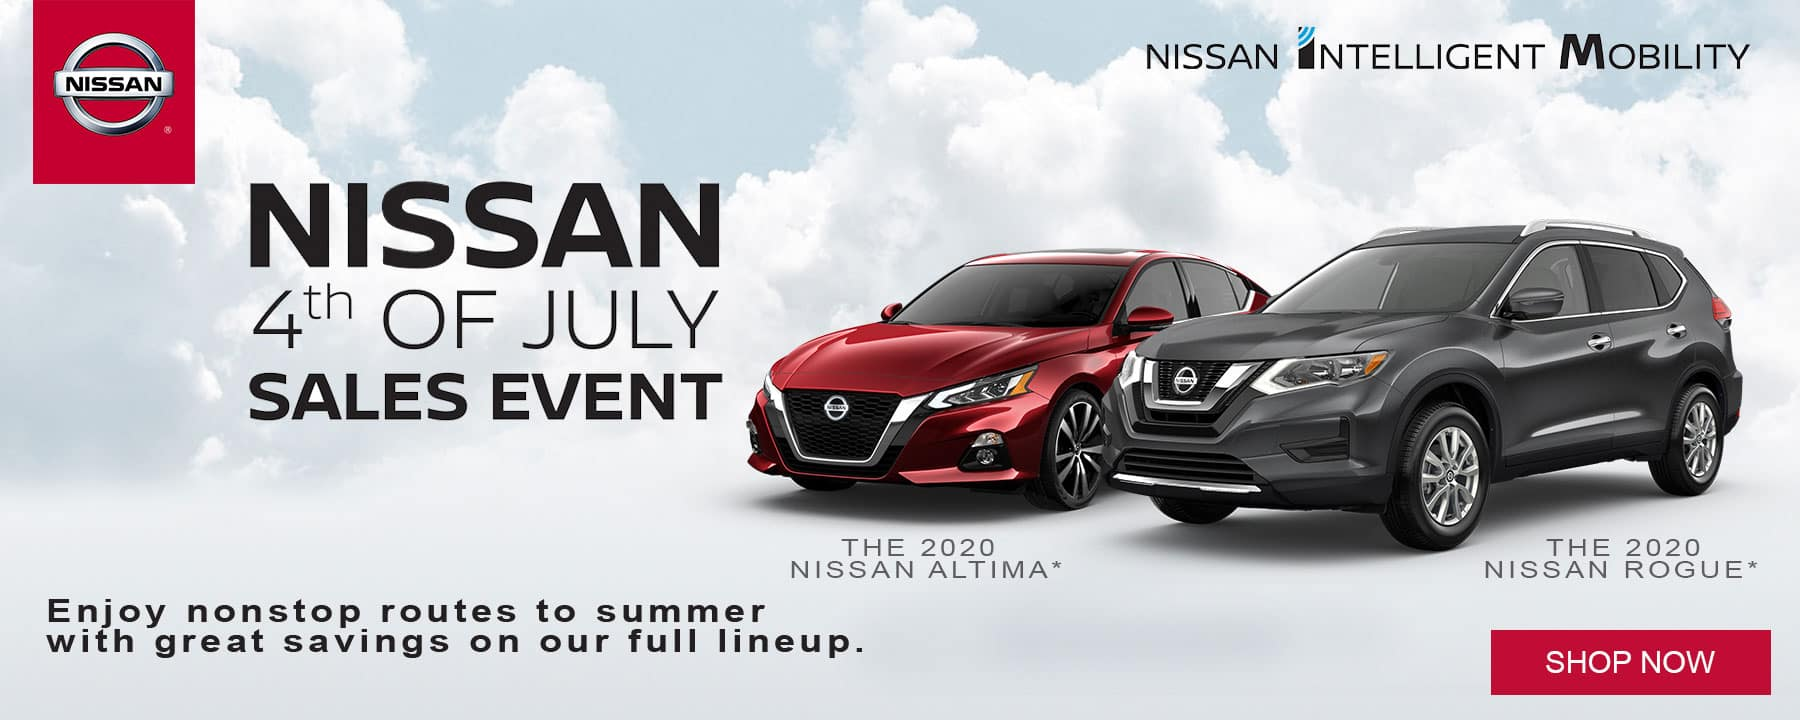 Visit us for Nissan's 4th of July Sales Event and start saving now!